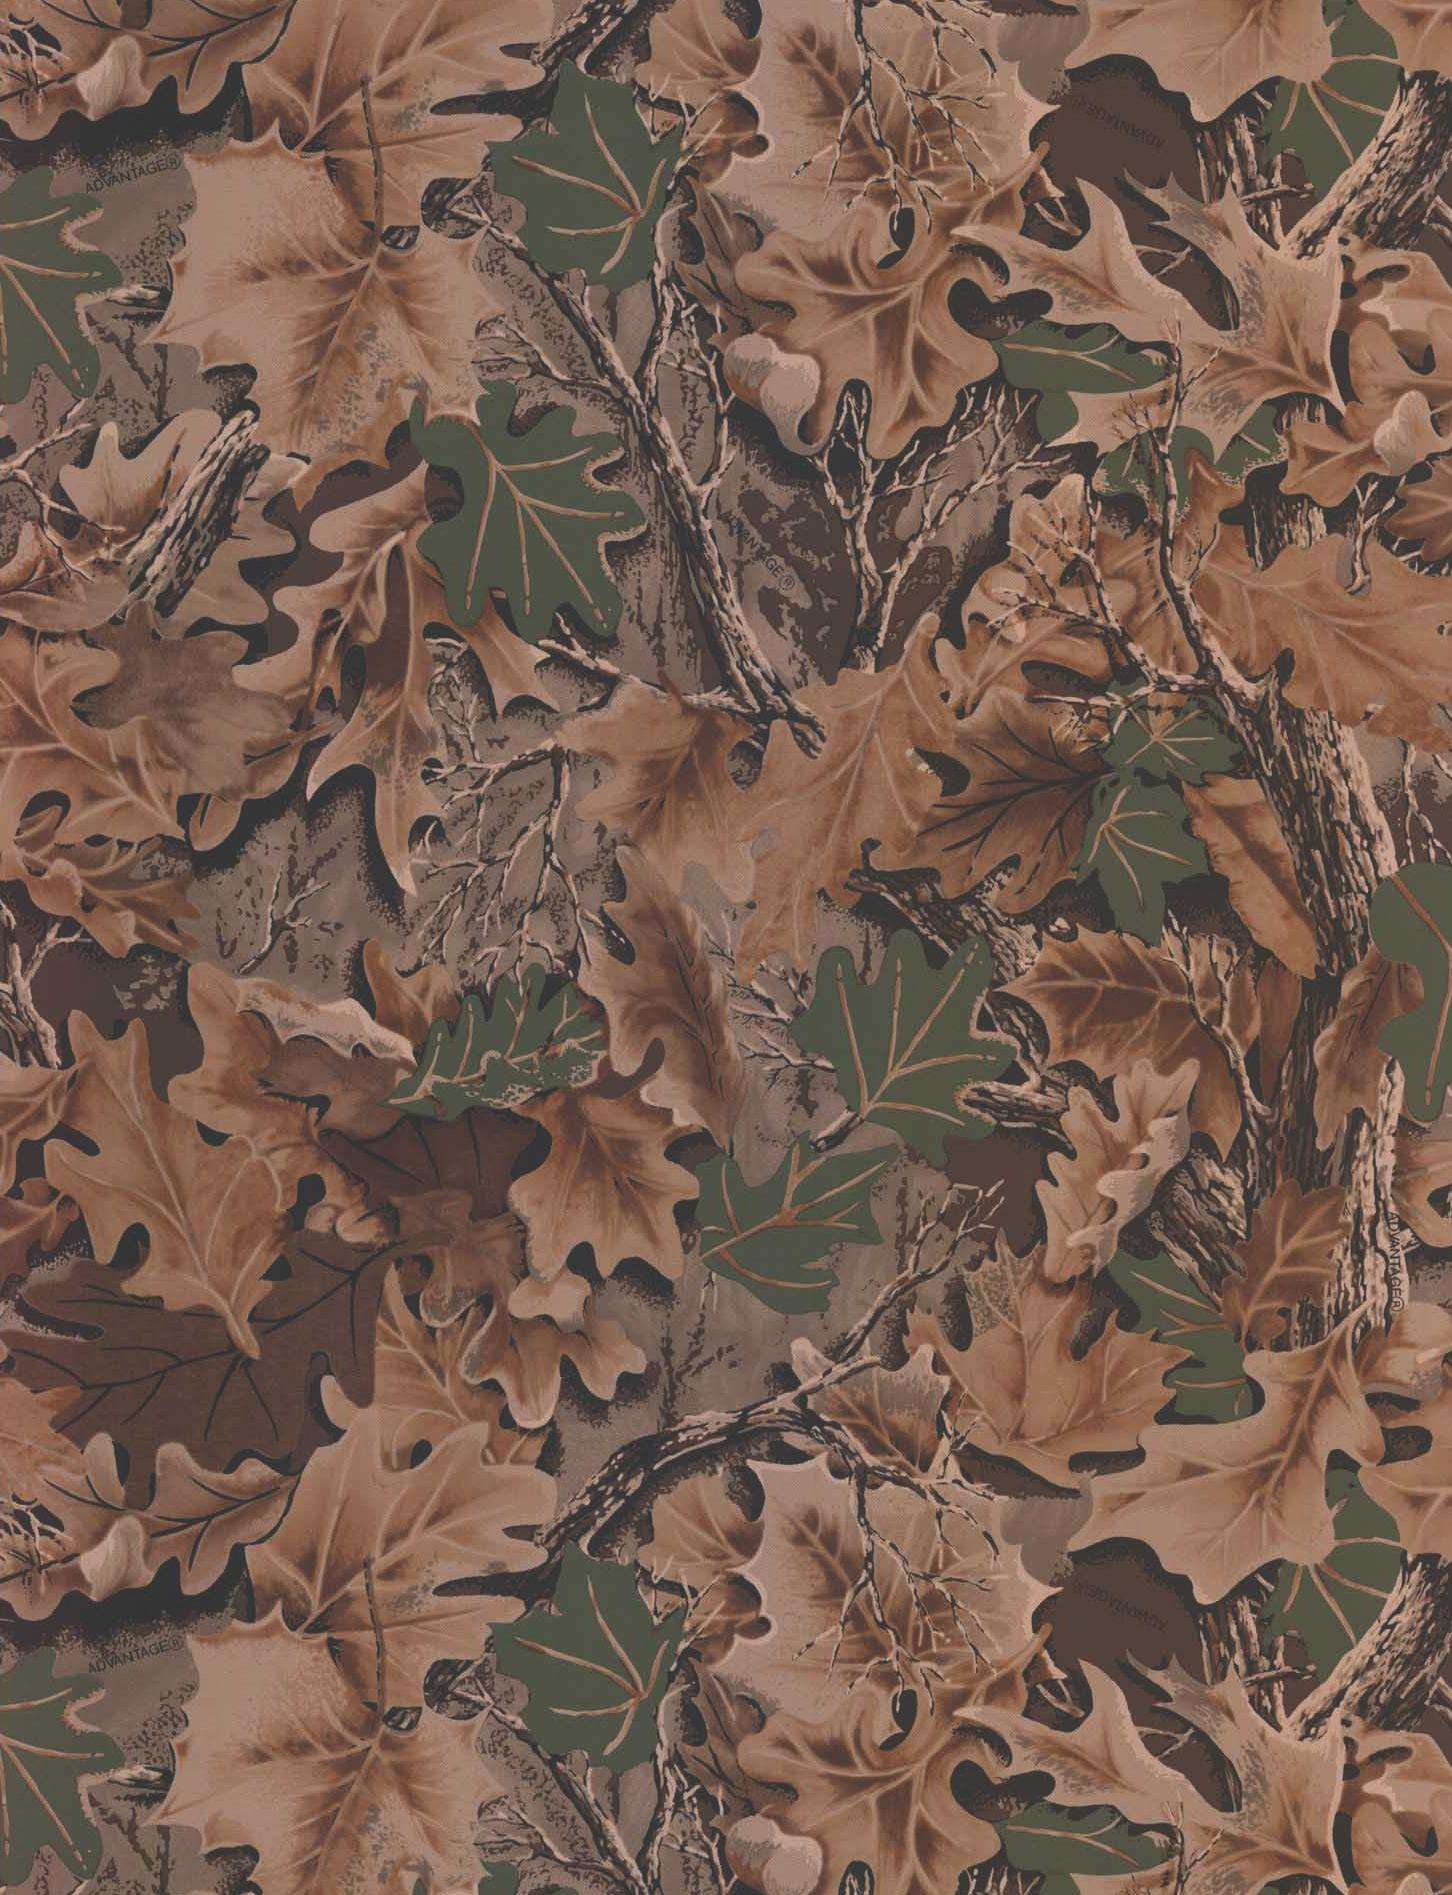 Realtree Camo Backgrounds Realtree classic camo 1452x1895